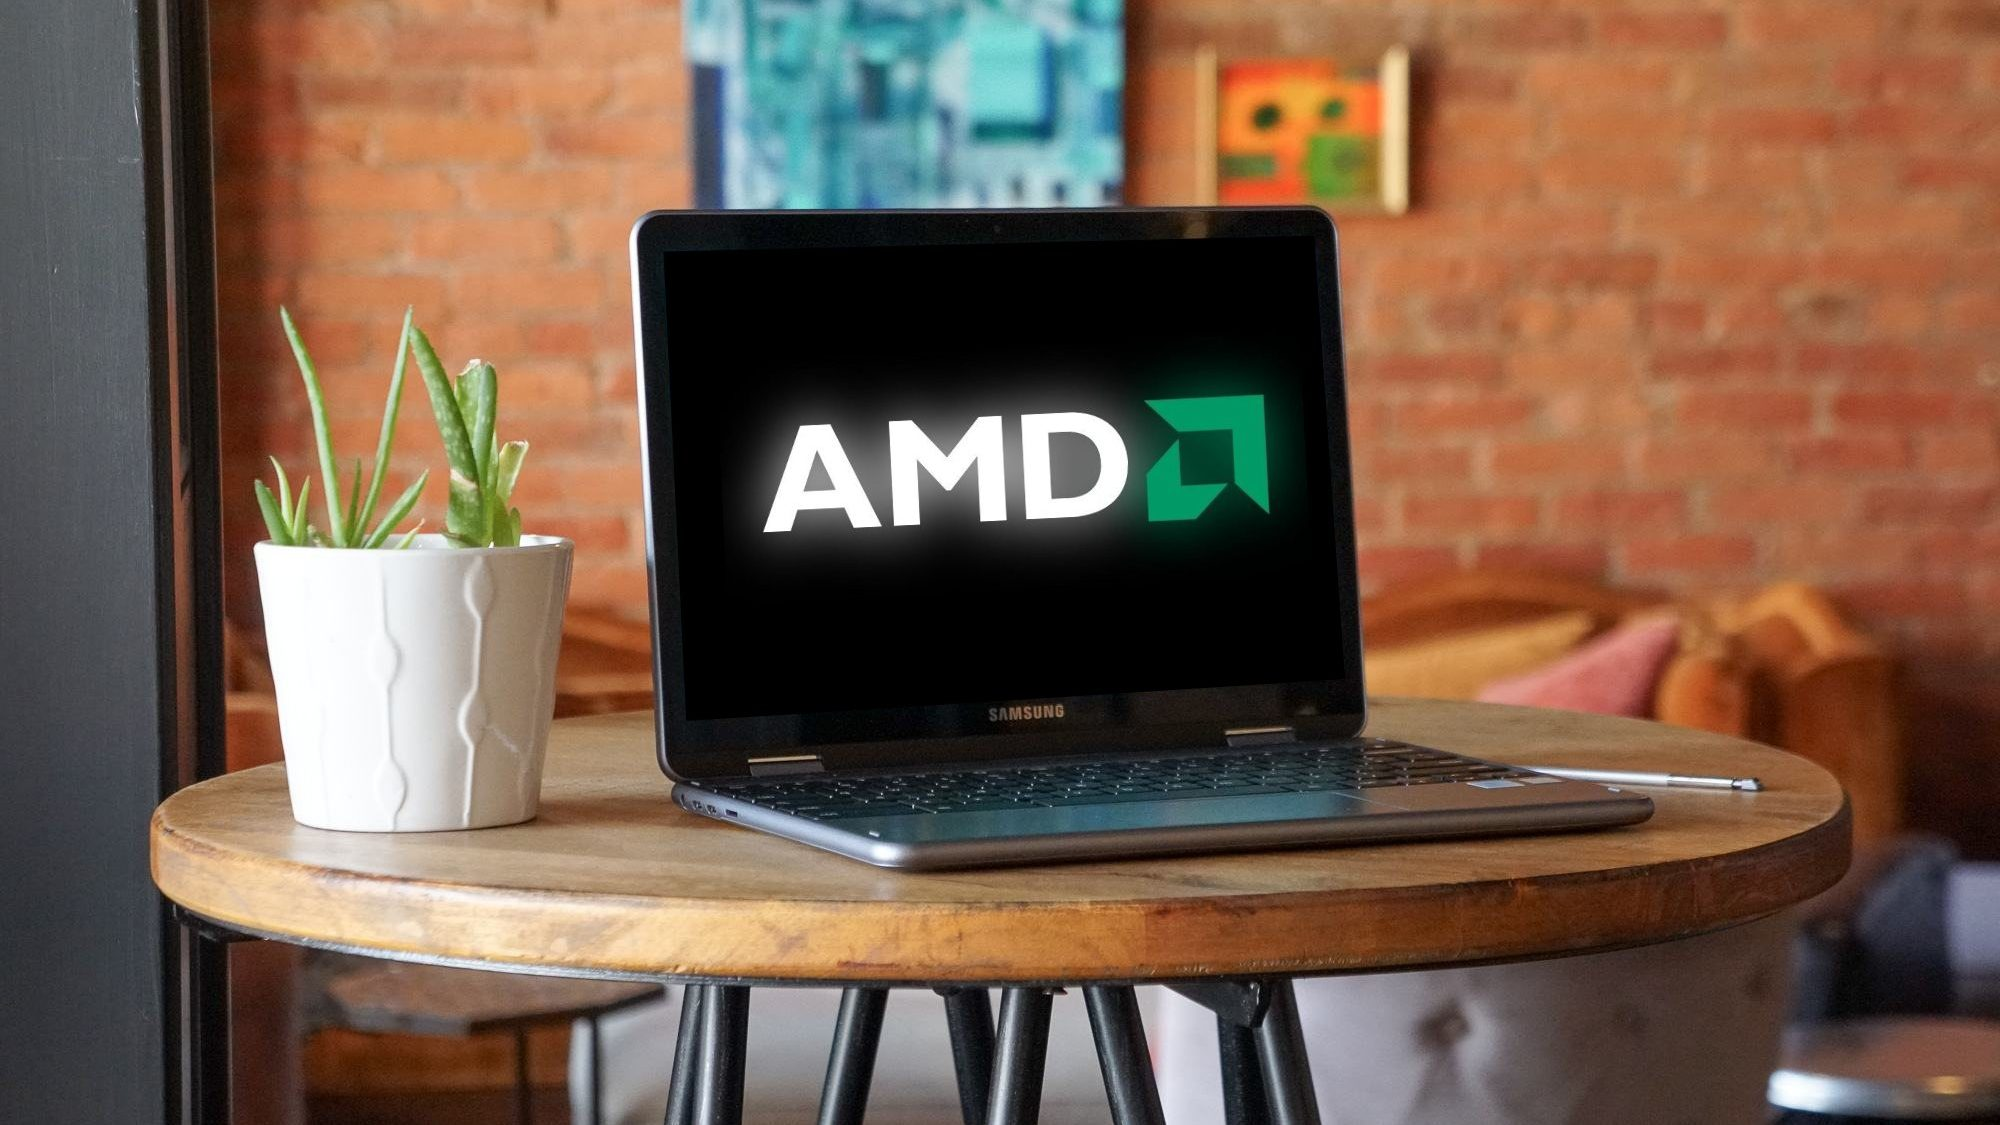 We could finally see flagship Chromebooks with powerful AMD processors at CES